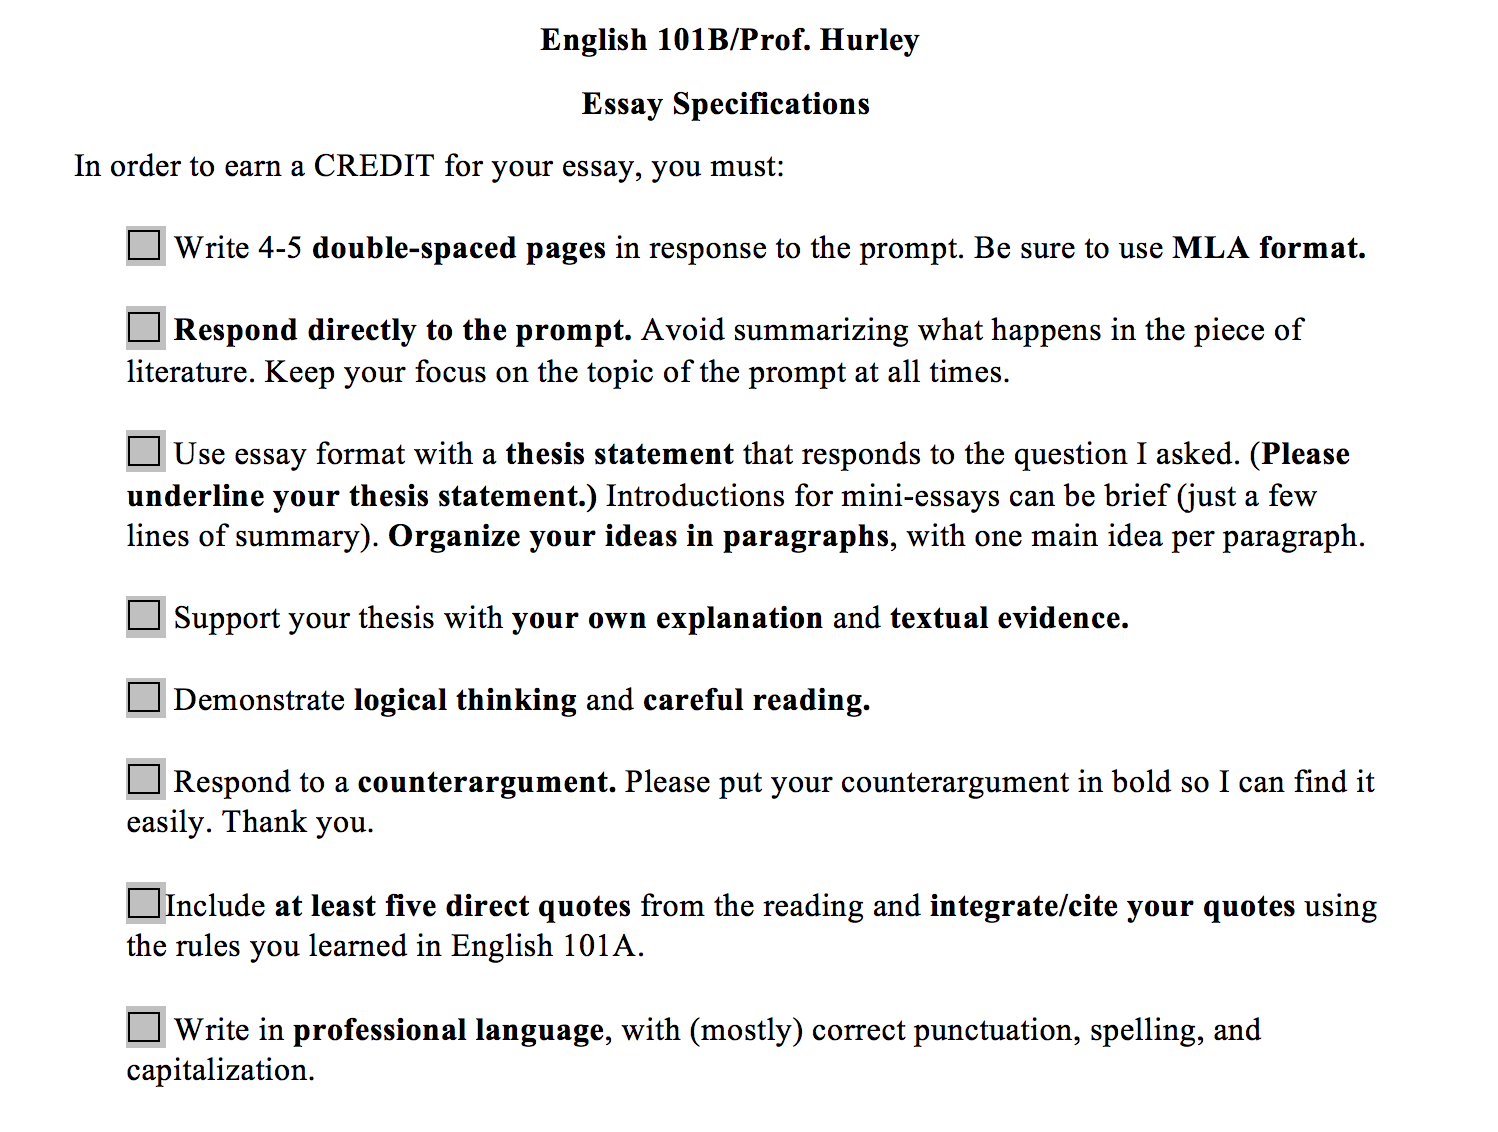 Career Goals Essay  Interesting Topics For A Persuasive Essay also The Nature Essay Vagueness The Surprising Thing We Might Need More Of In  Catw Essay Samples